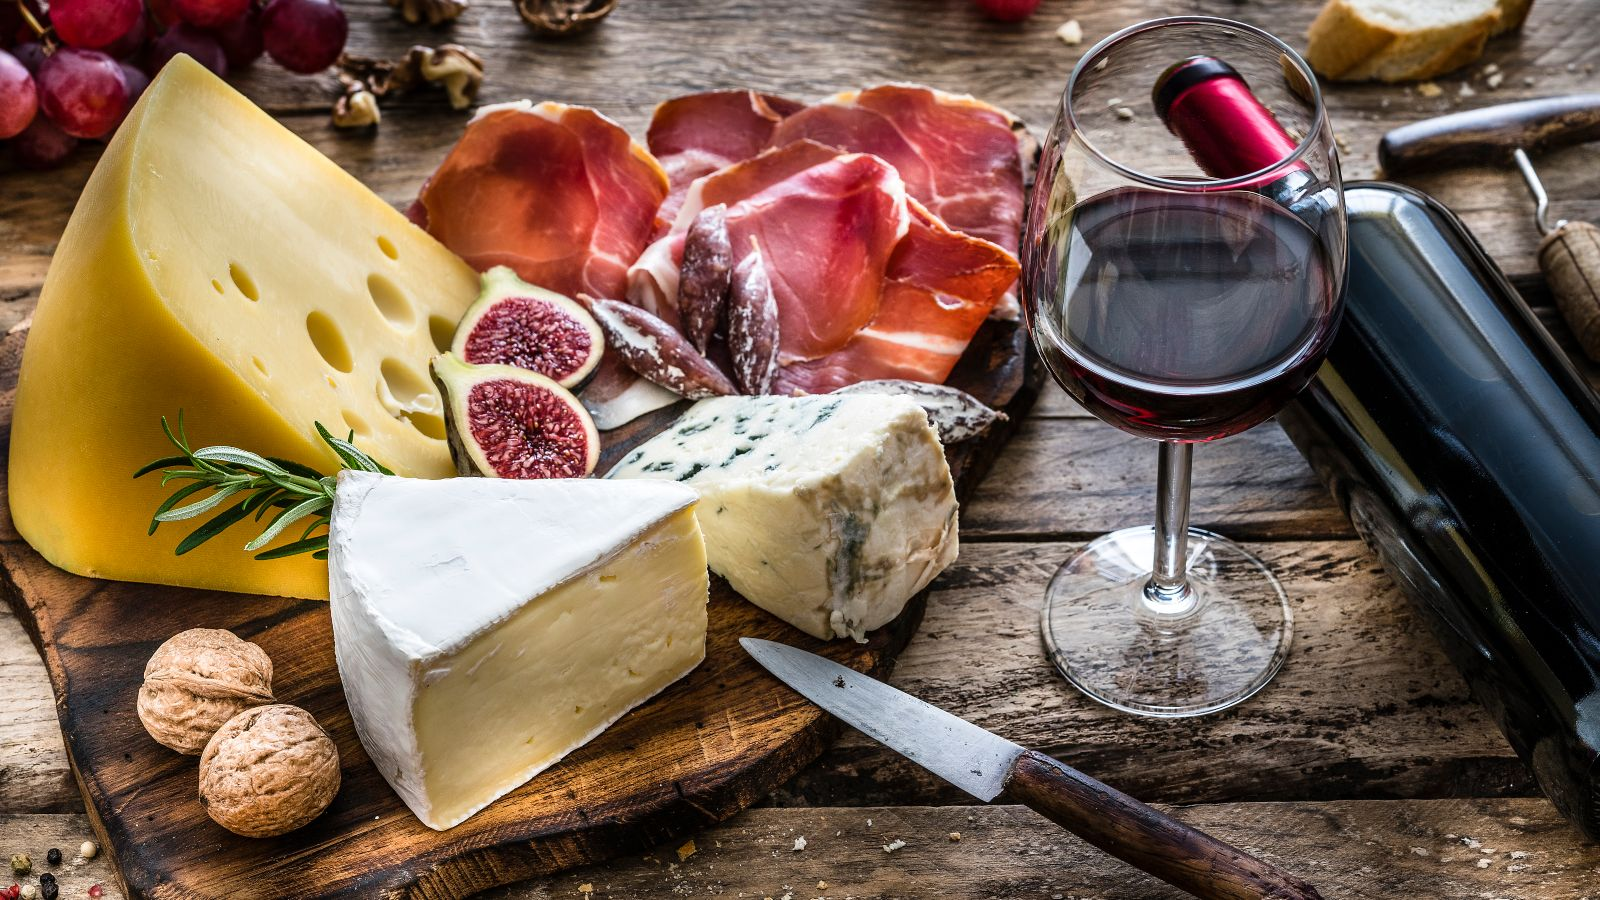 cheese board with a glass of wine